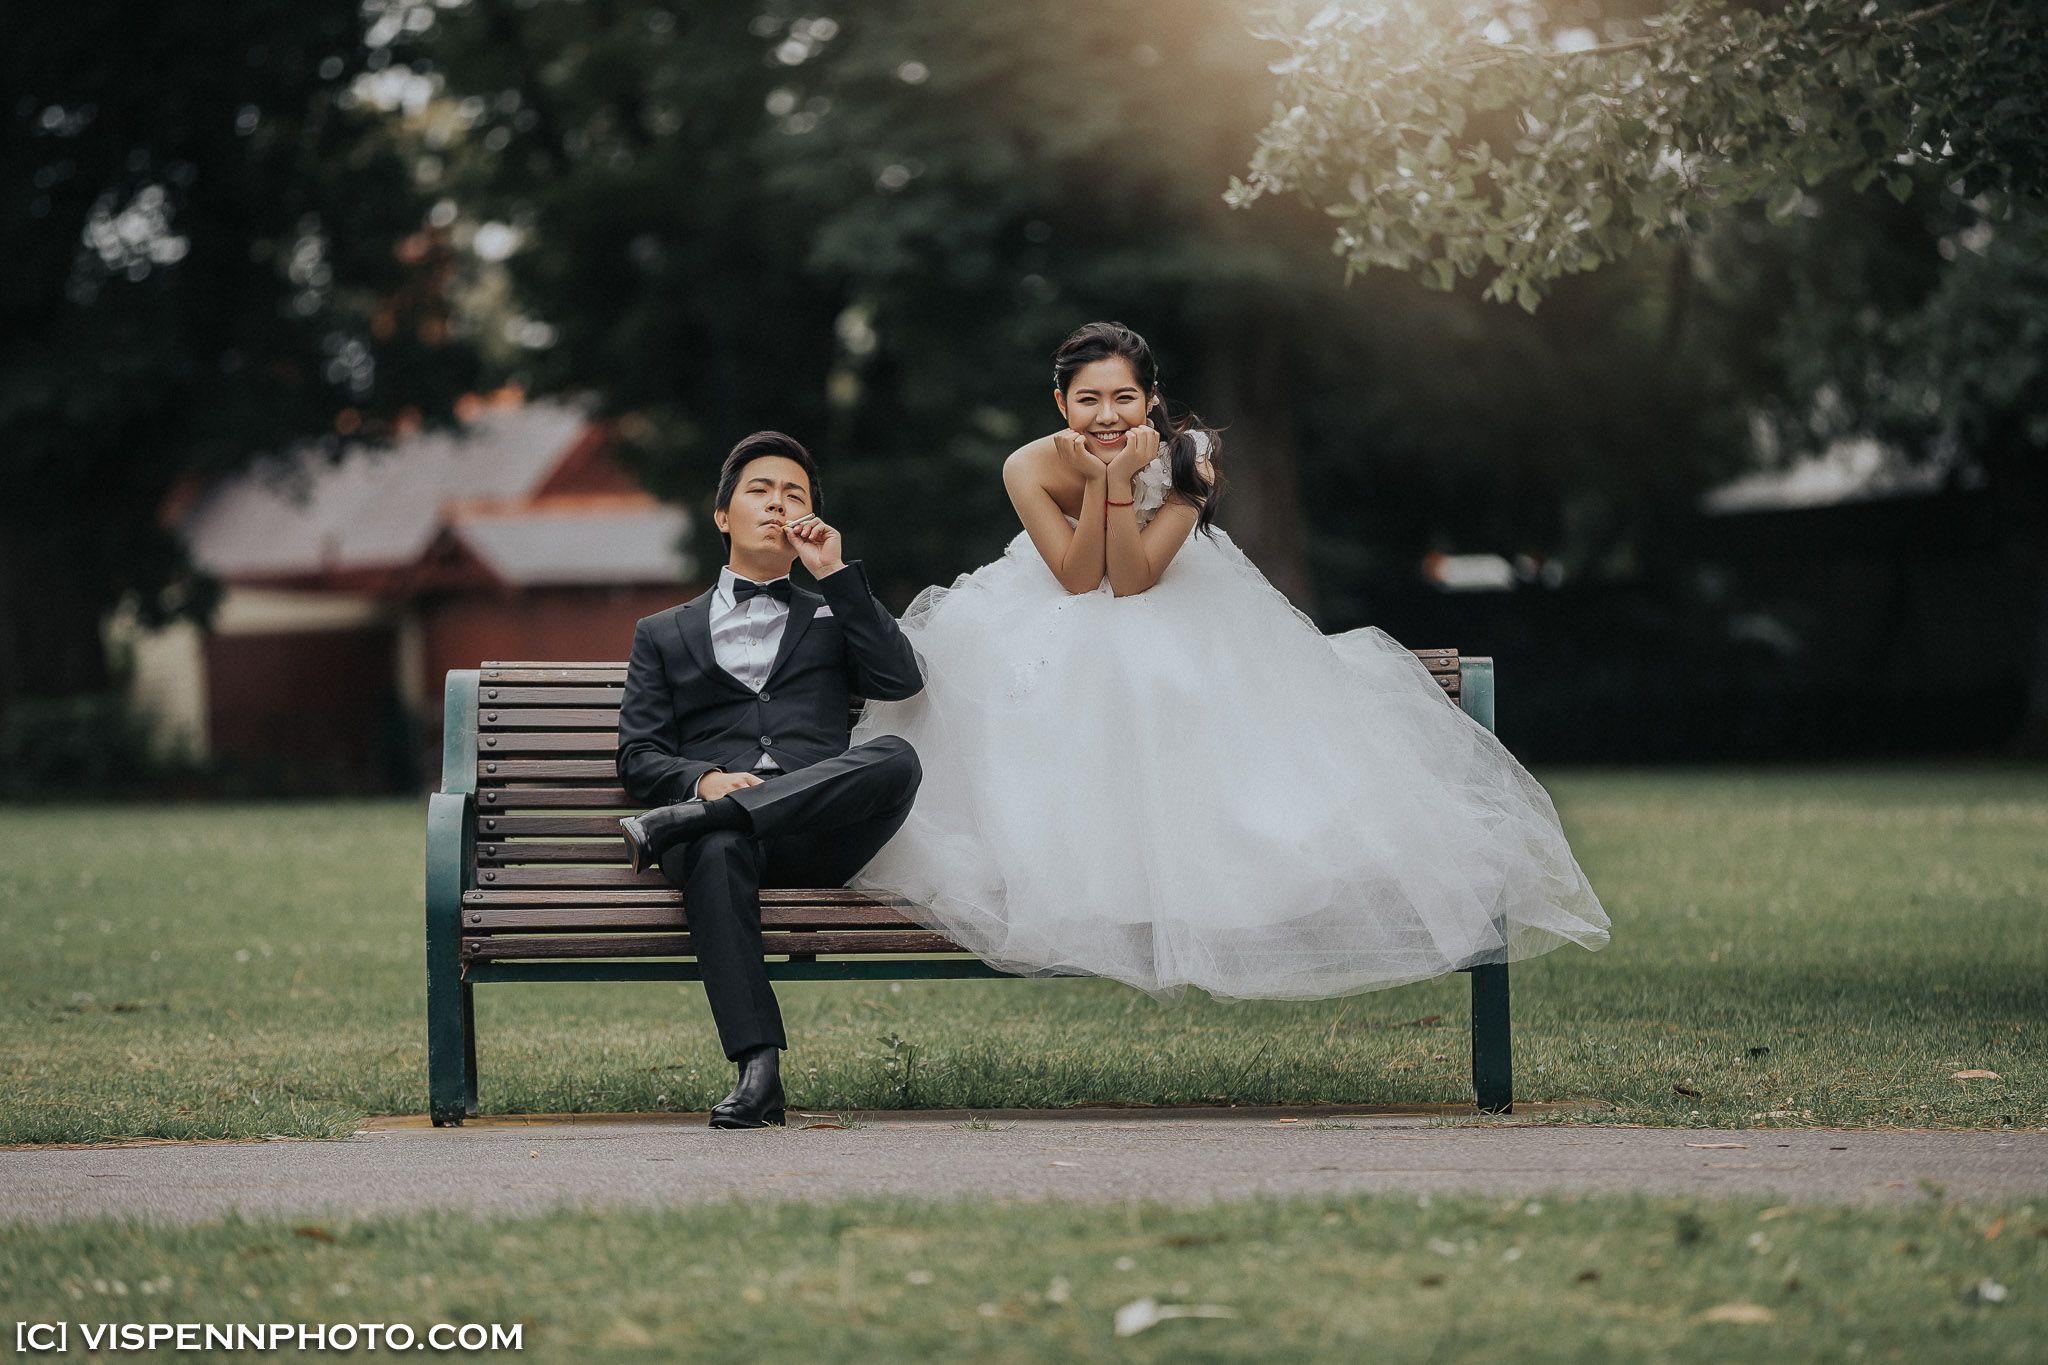 PRE WEDDING Photography Melbourne 1DX 0610